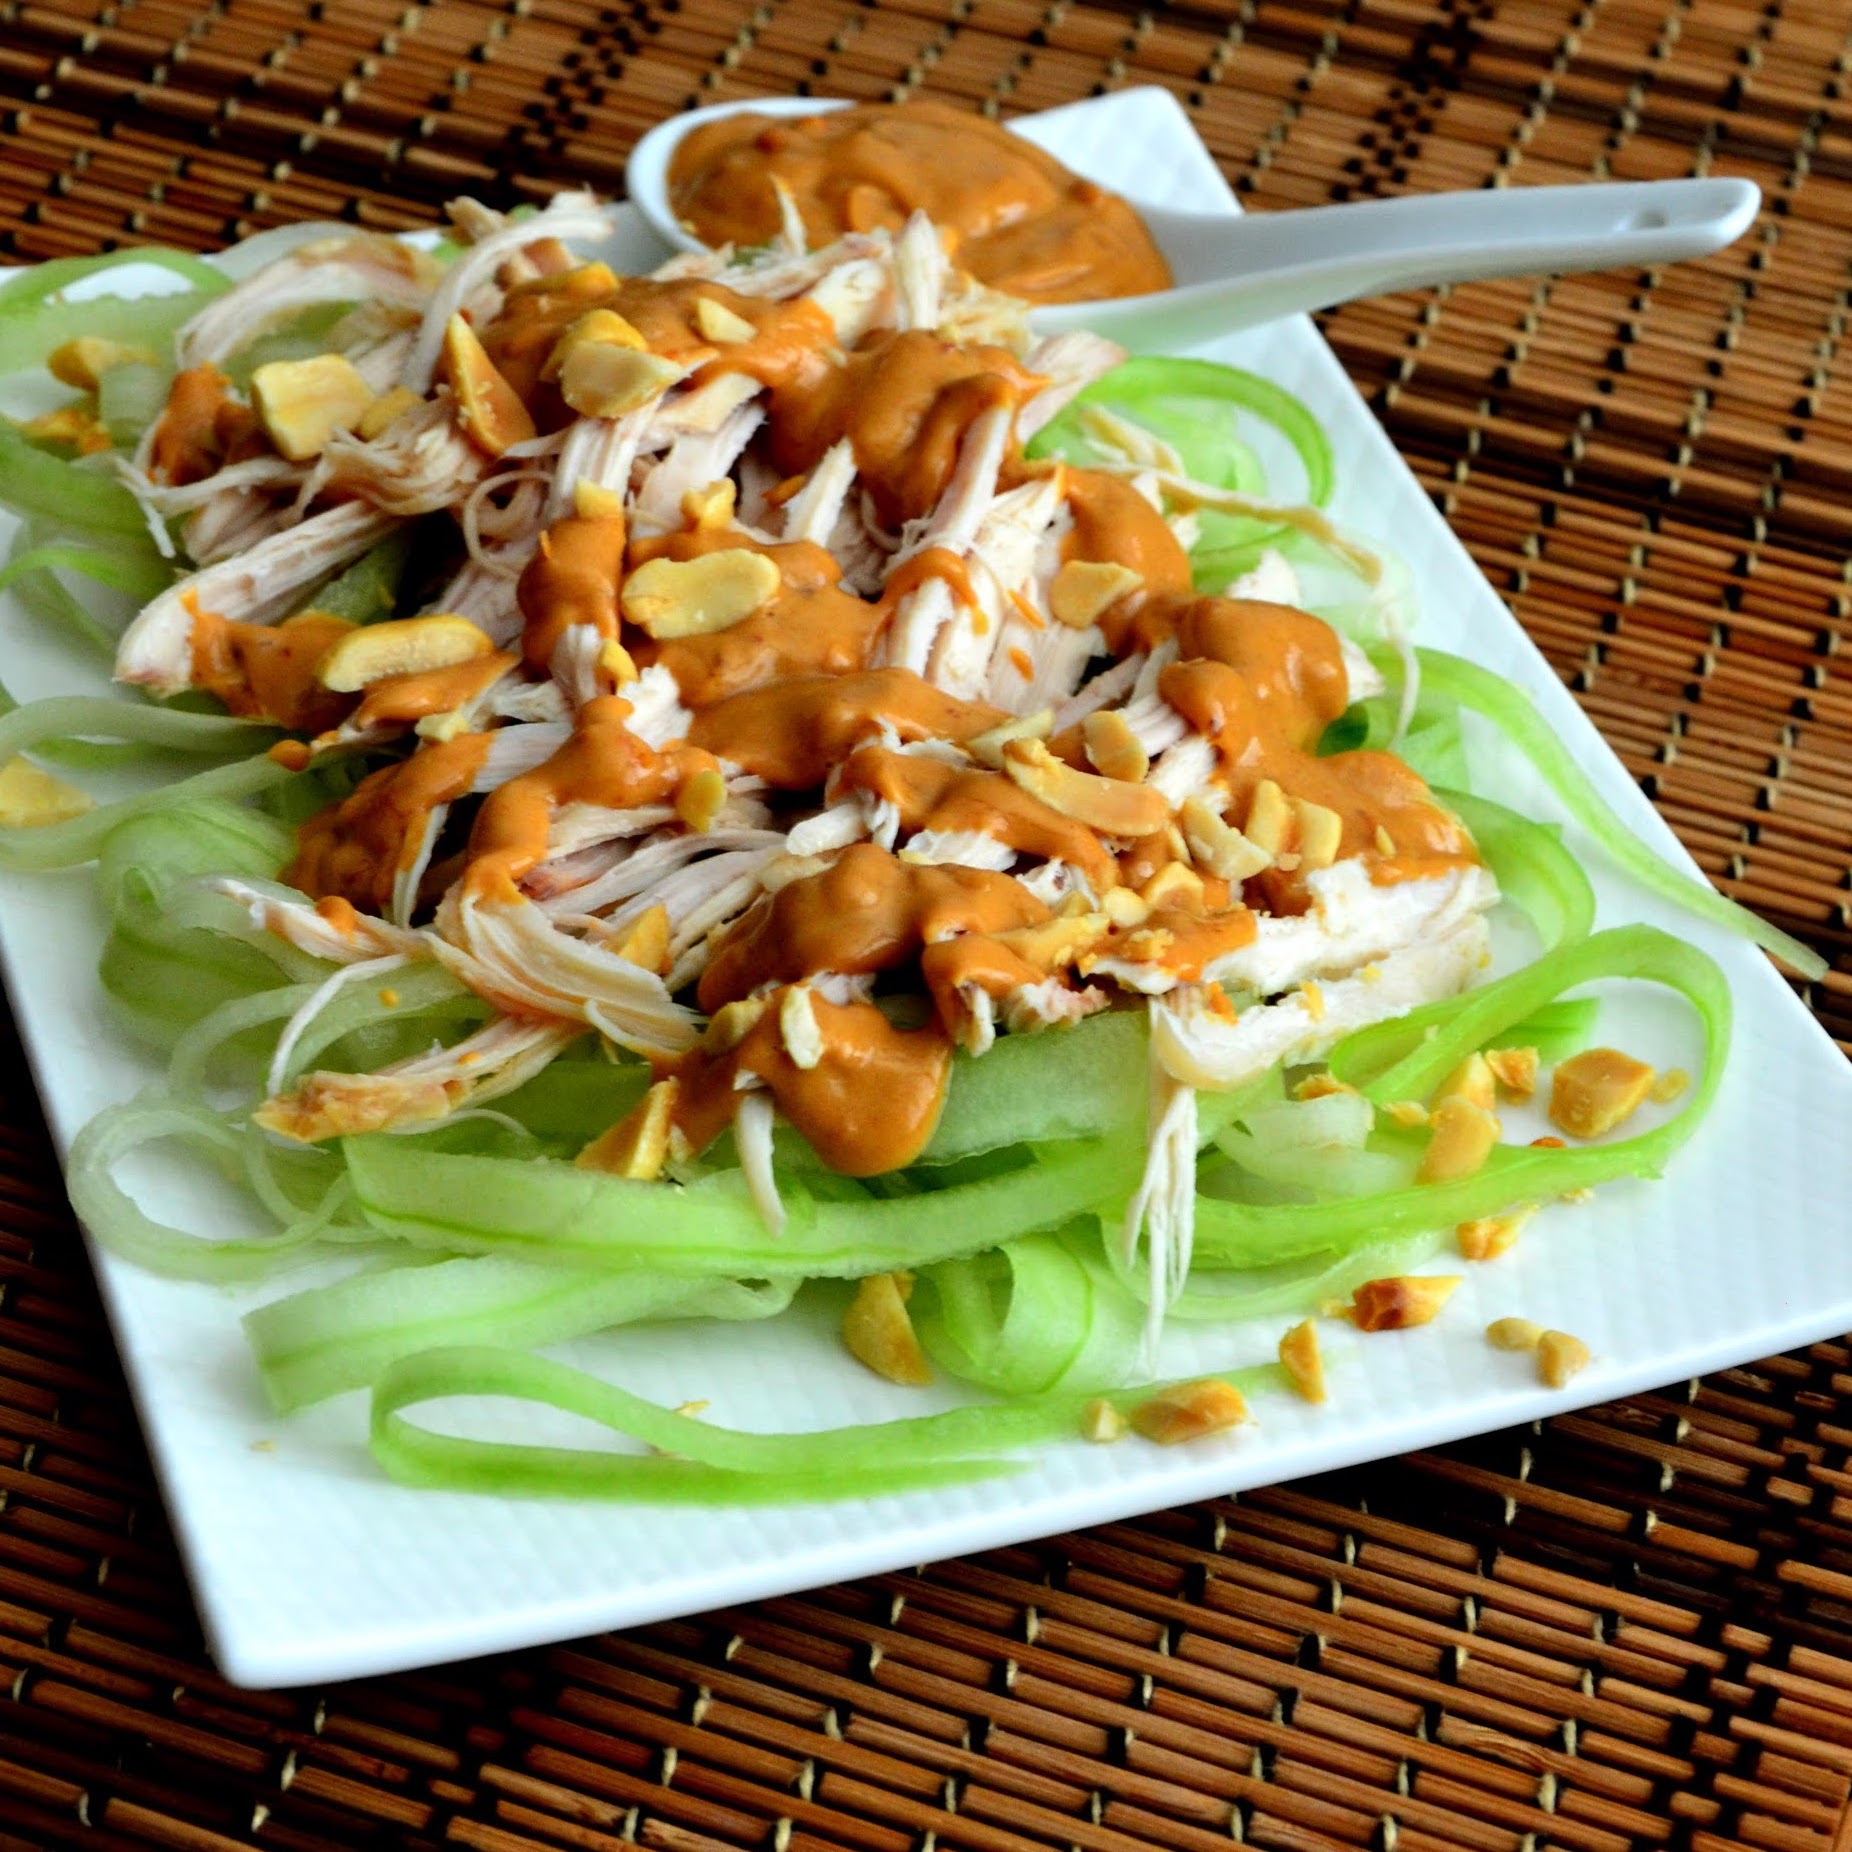 Cucumber Chicken Salad with Spicy Peanut Dressing